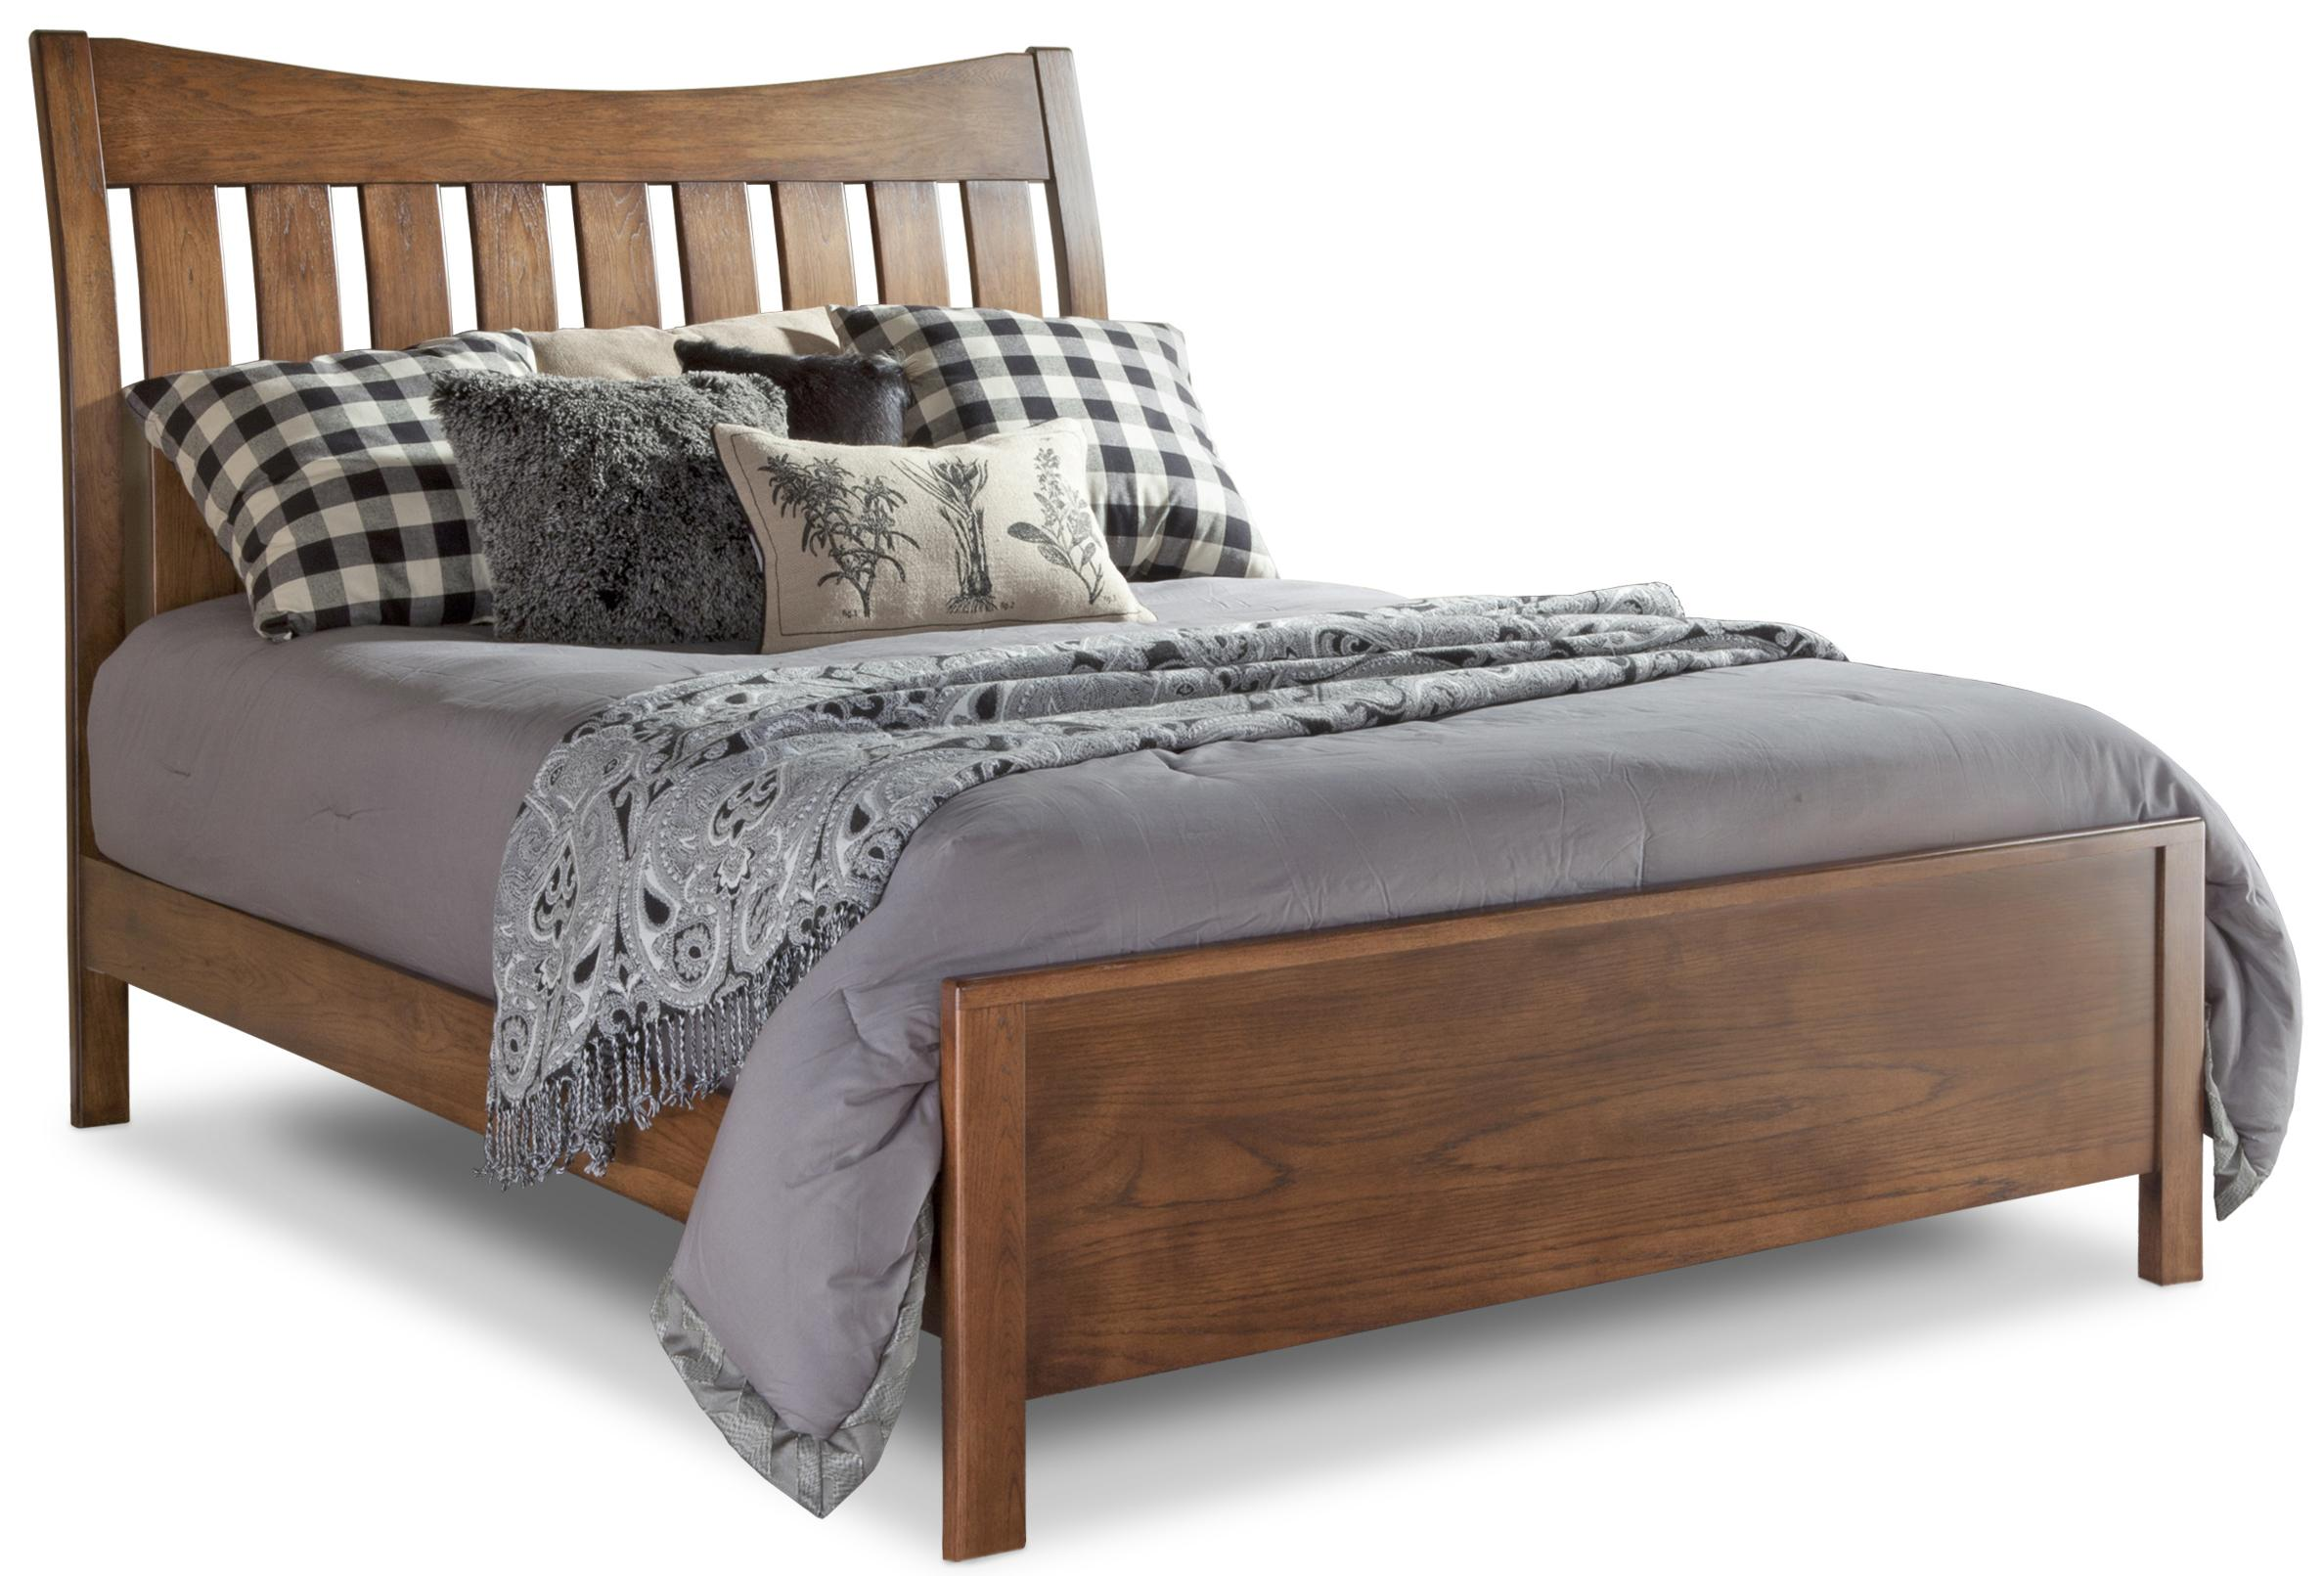 Bedfort DA Twin Bed by Daniel's Amish at Saugerties Furniture Mart